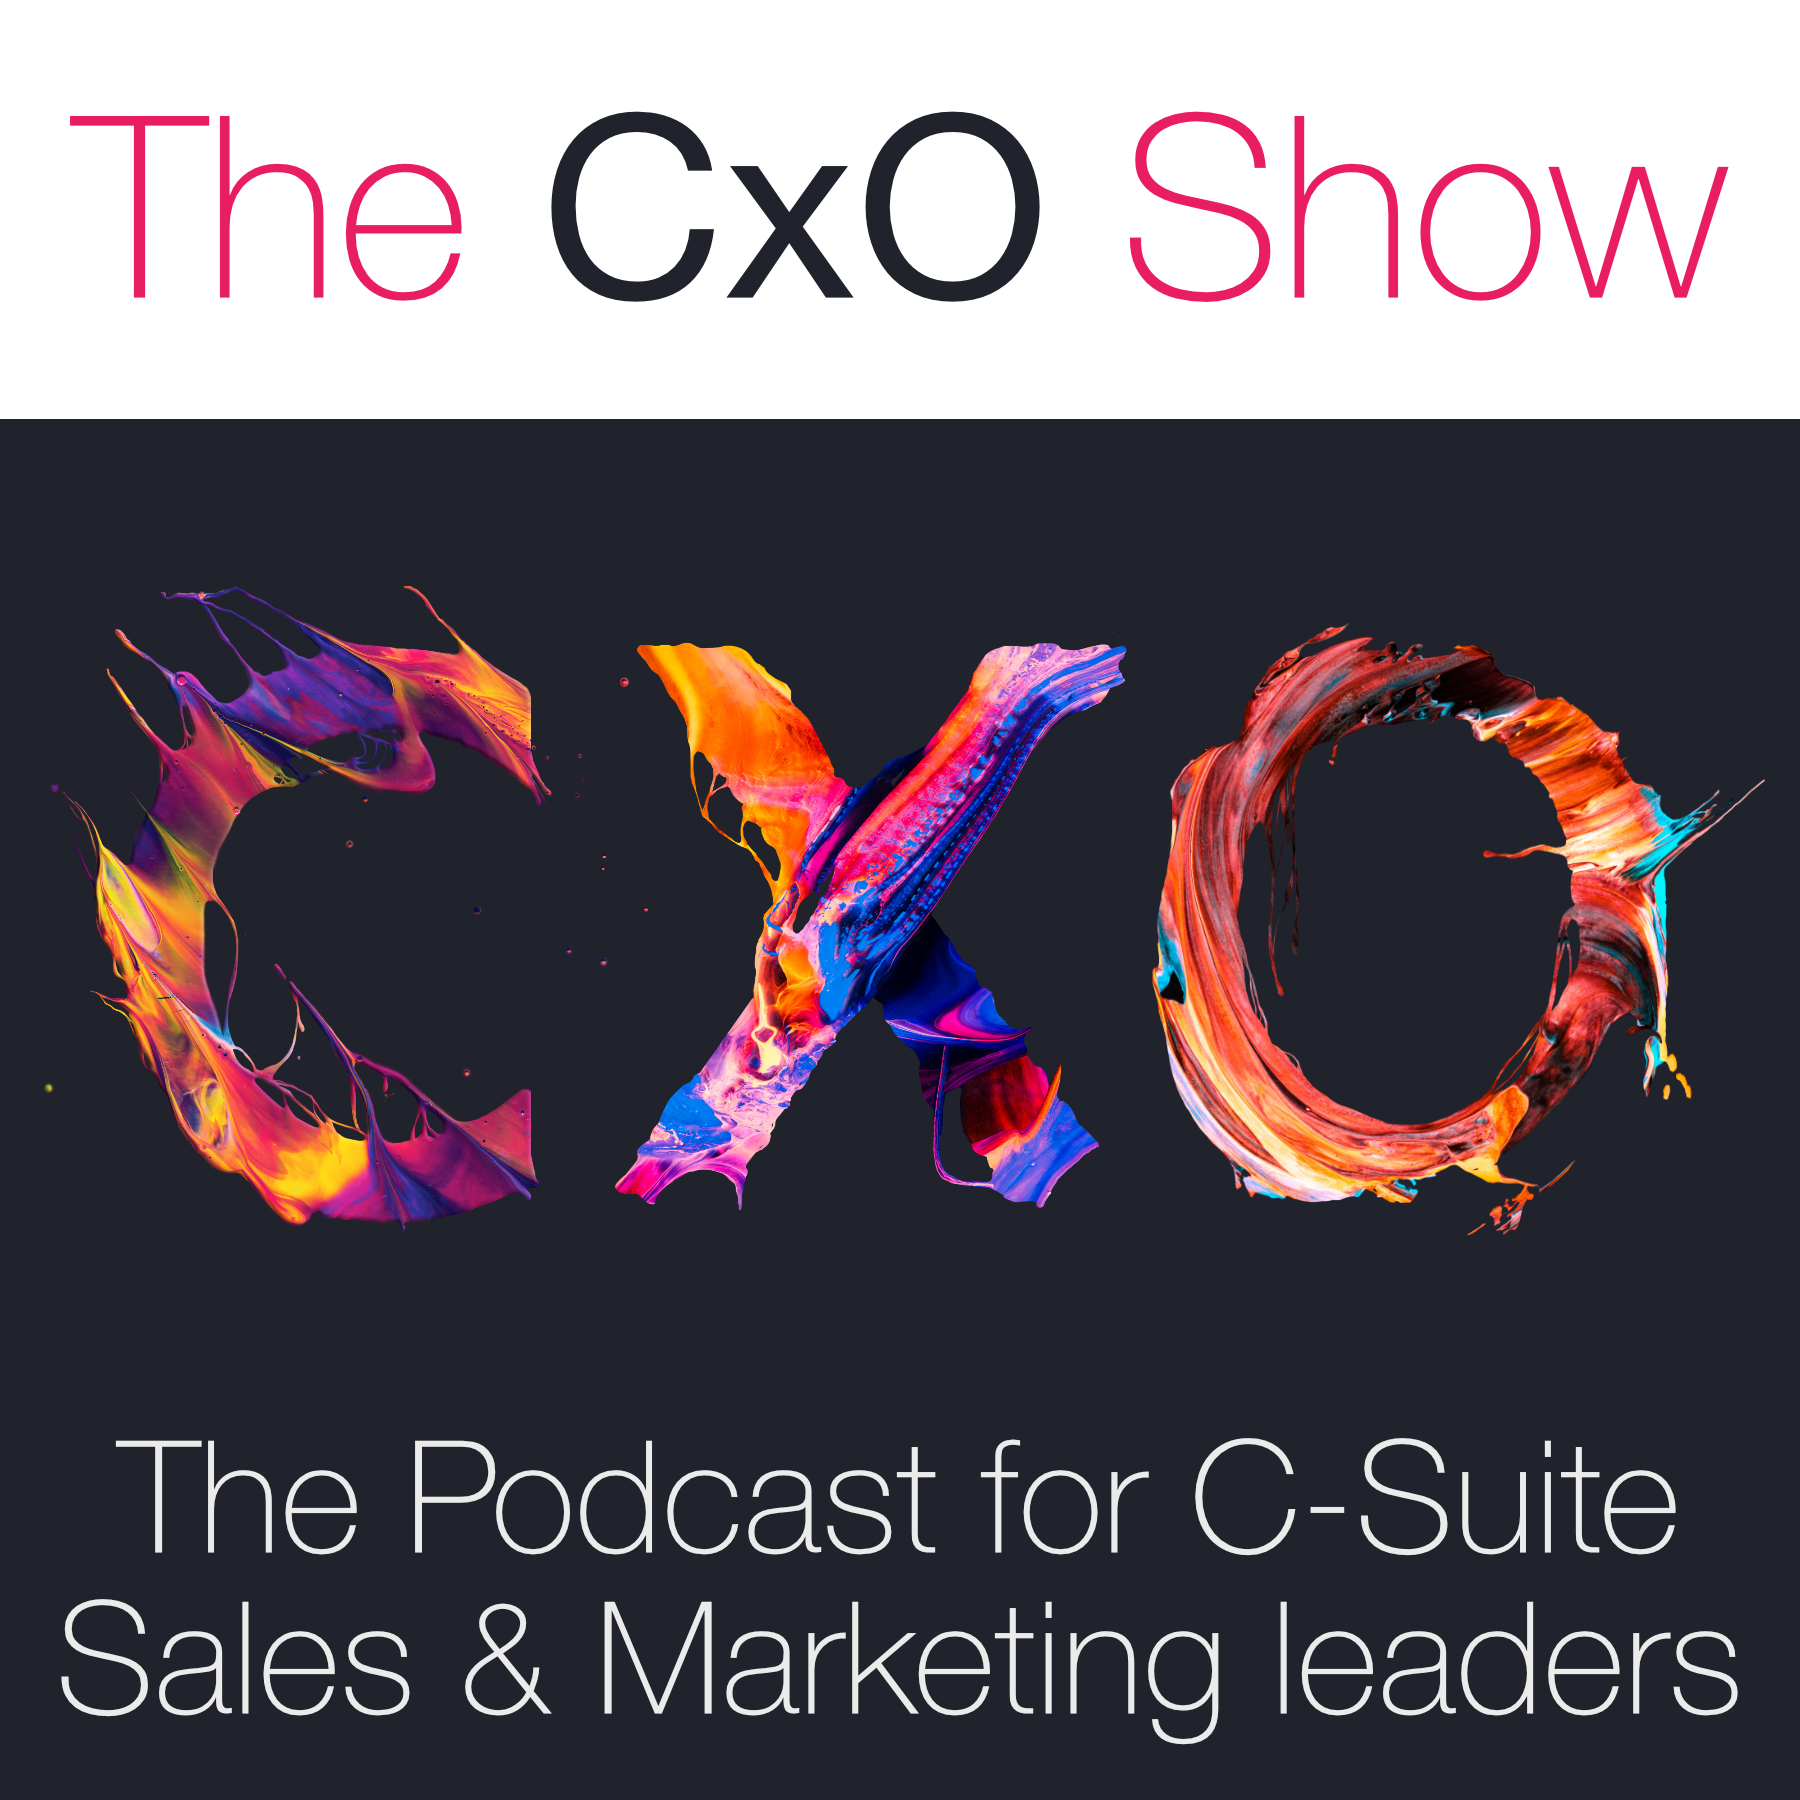 The CxO Show Podcast for Sales and Marketing Leaders